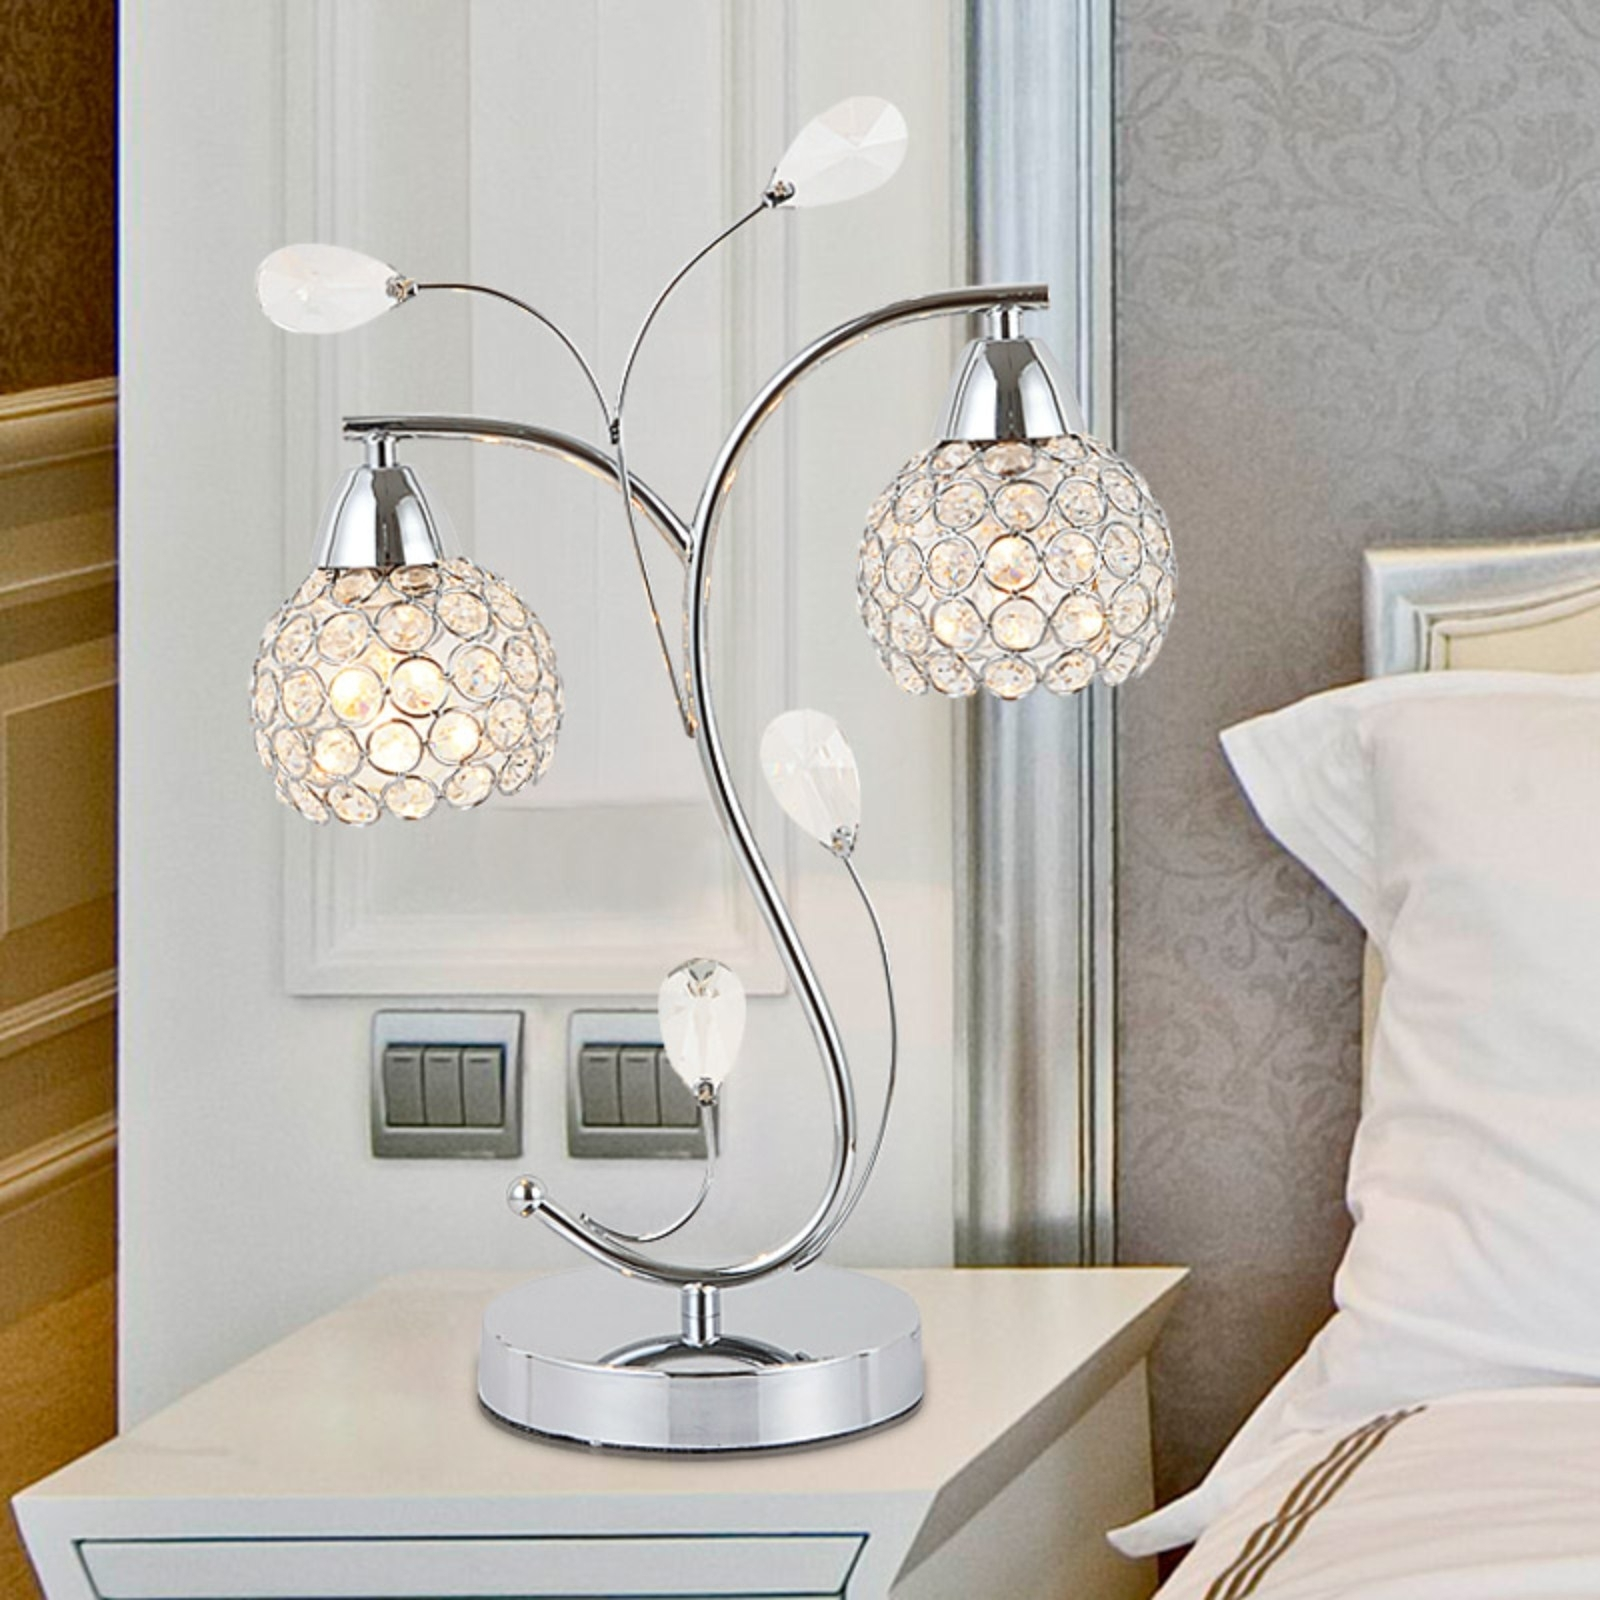 Fantastic And Unique Table Lamps For Your Room | Rememberingfallenjs Throughout Unique Table Lamps Living Room (View 13 of 15)